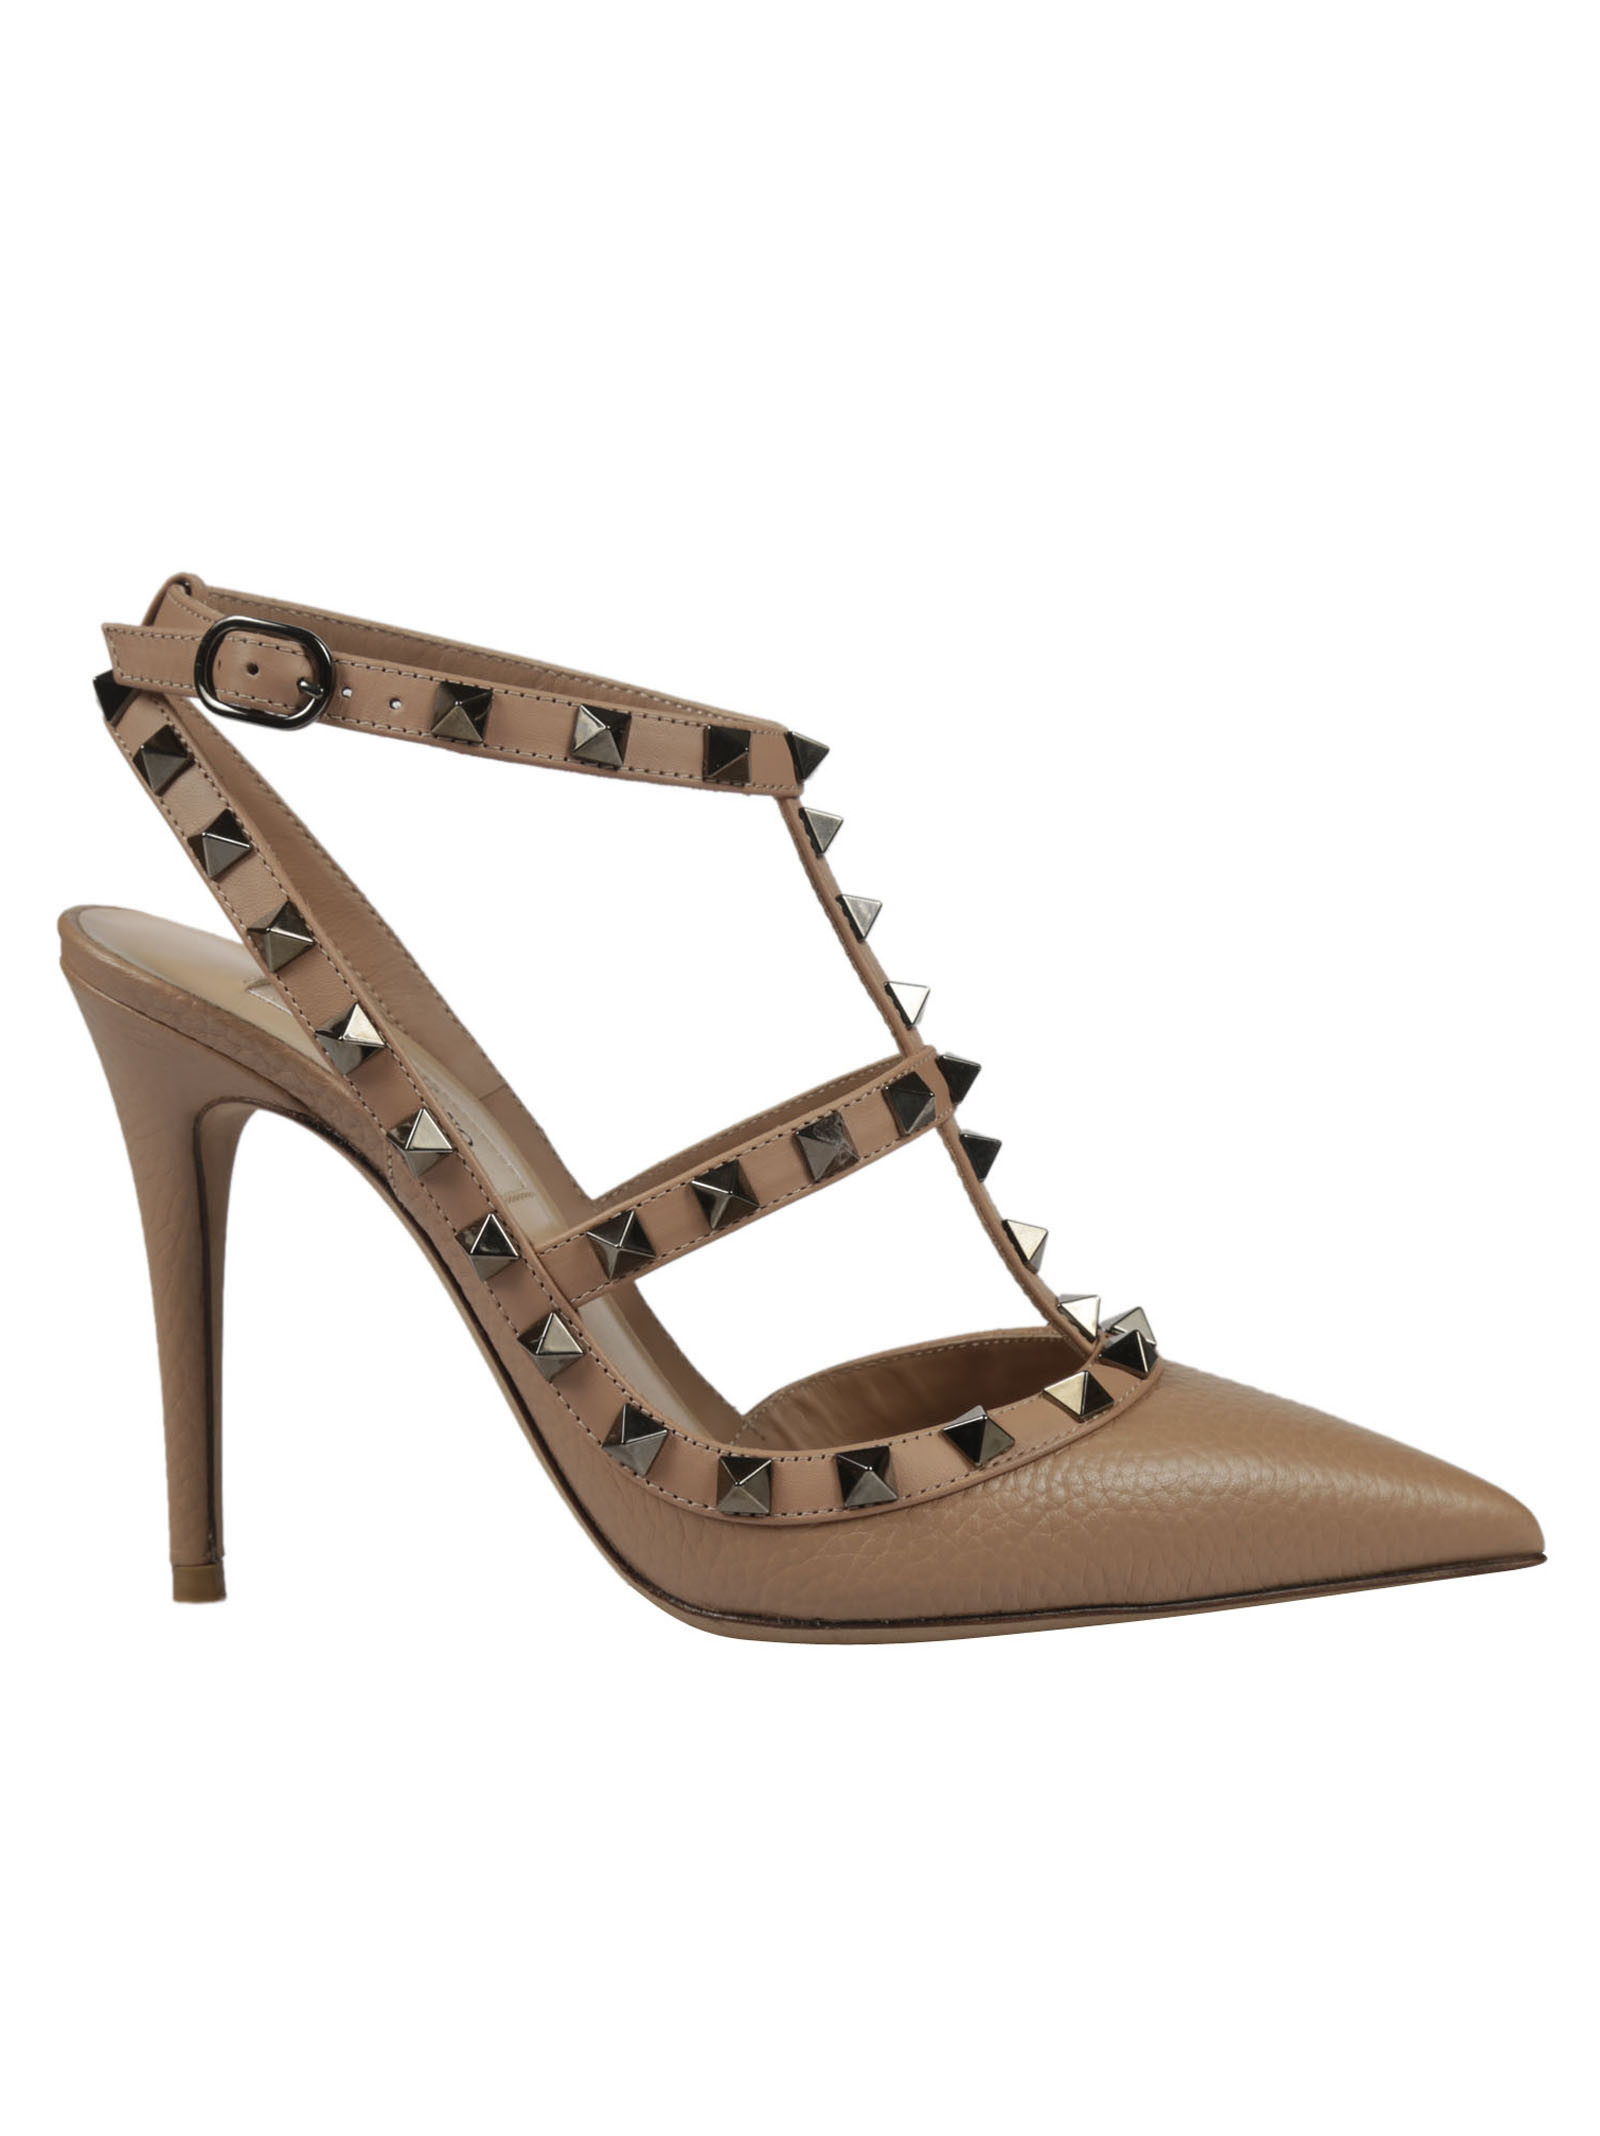 Rockstud Pumps from Valentino: Soft Hazelnut Rockstud Pumps with pointed toe, branded insole, rockstud detail and ankle strap with buckle closure.